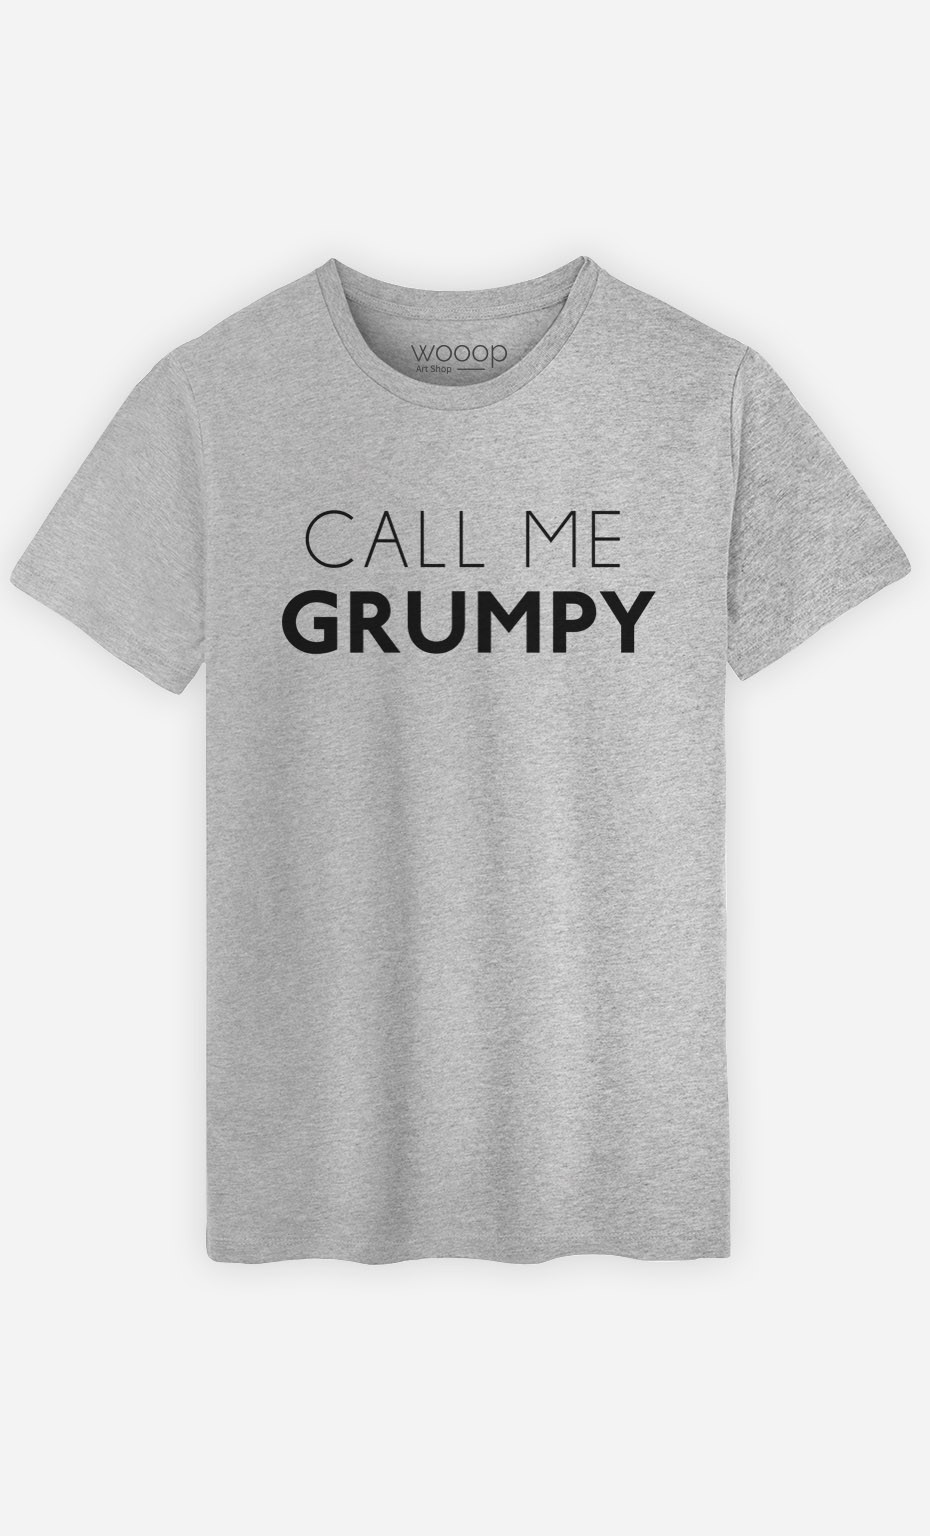 T-Shirt Call Me Grumpy